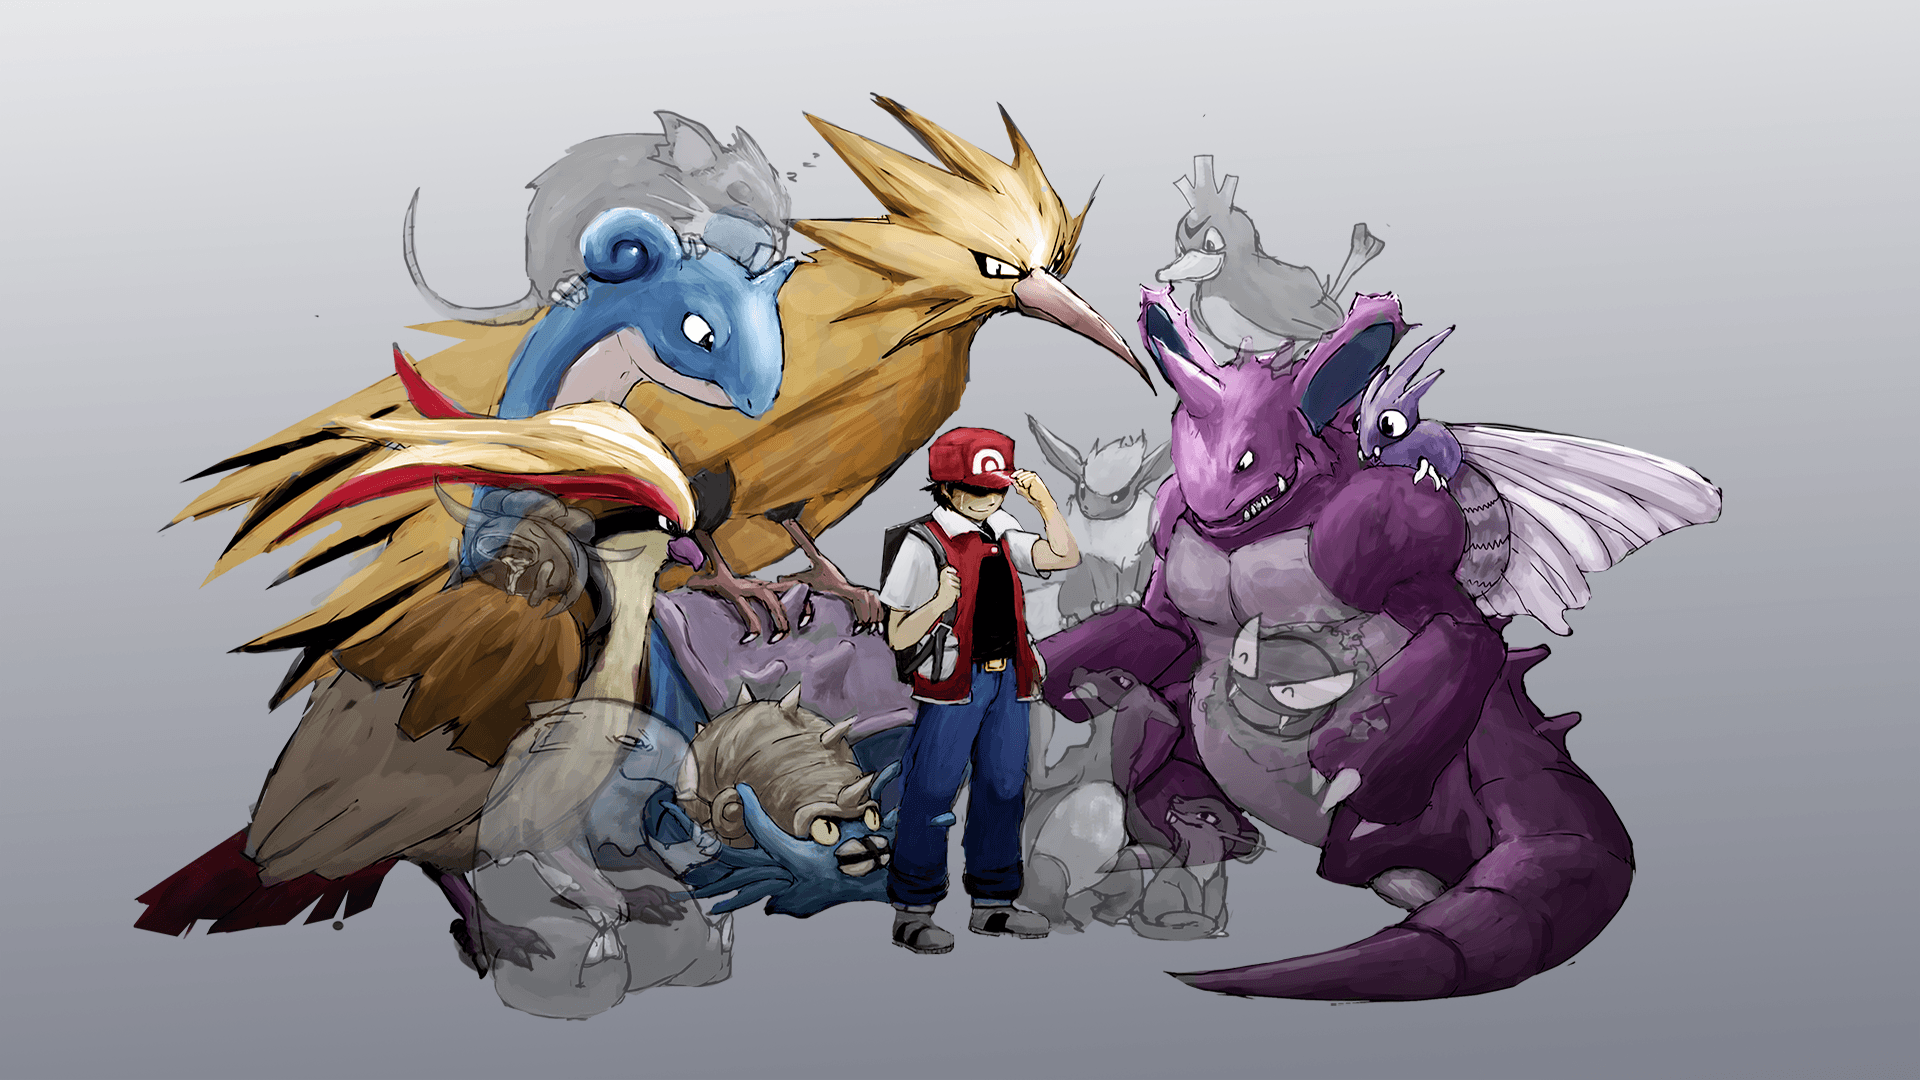 charmeleon, drowzee, farfetch'd, flareon, gastly, and others ...